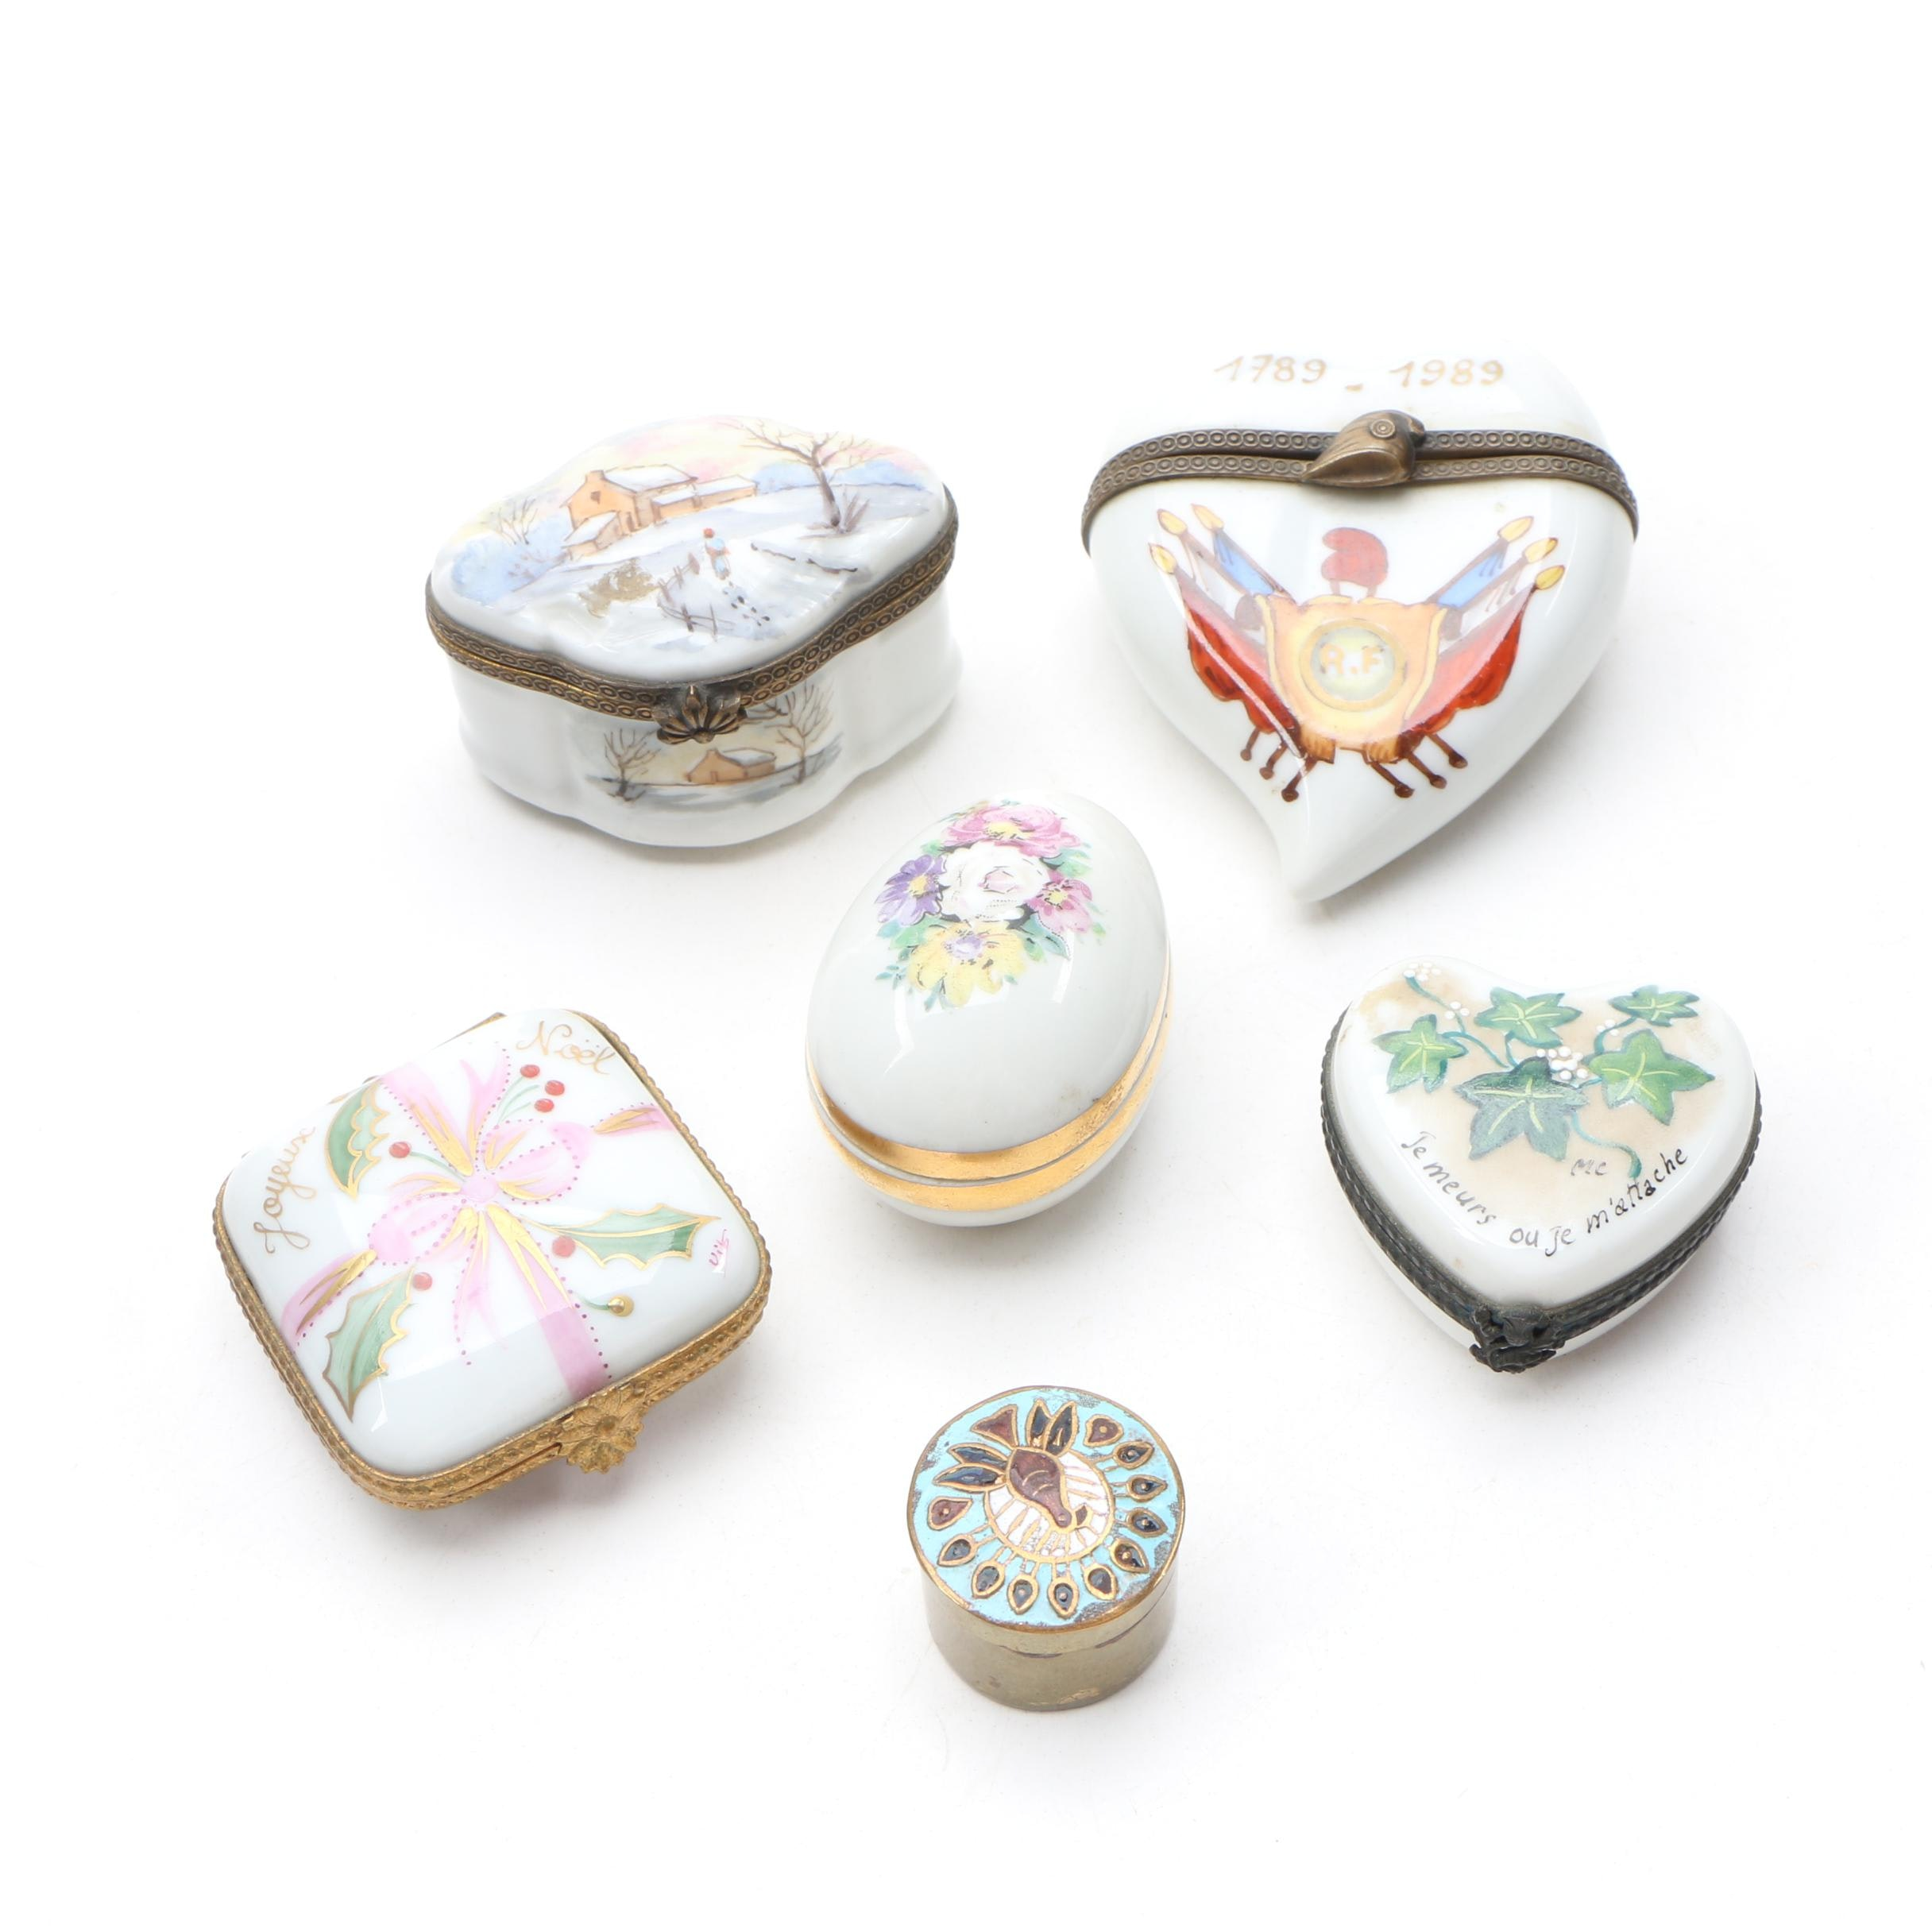 Limoges Porcelain Trinket Boxes Including Commemoration of the French Revolution